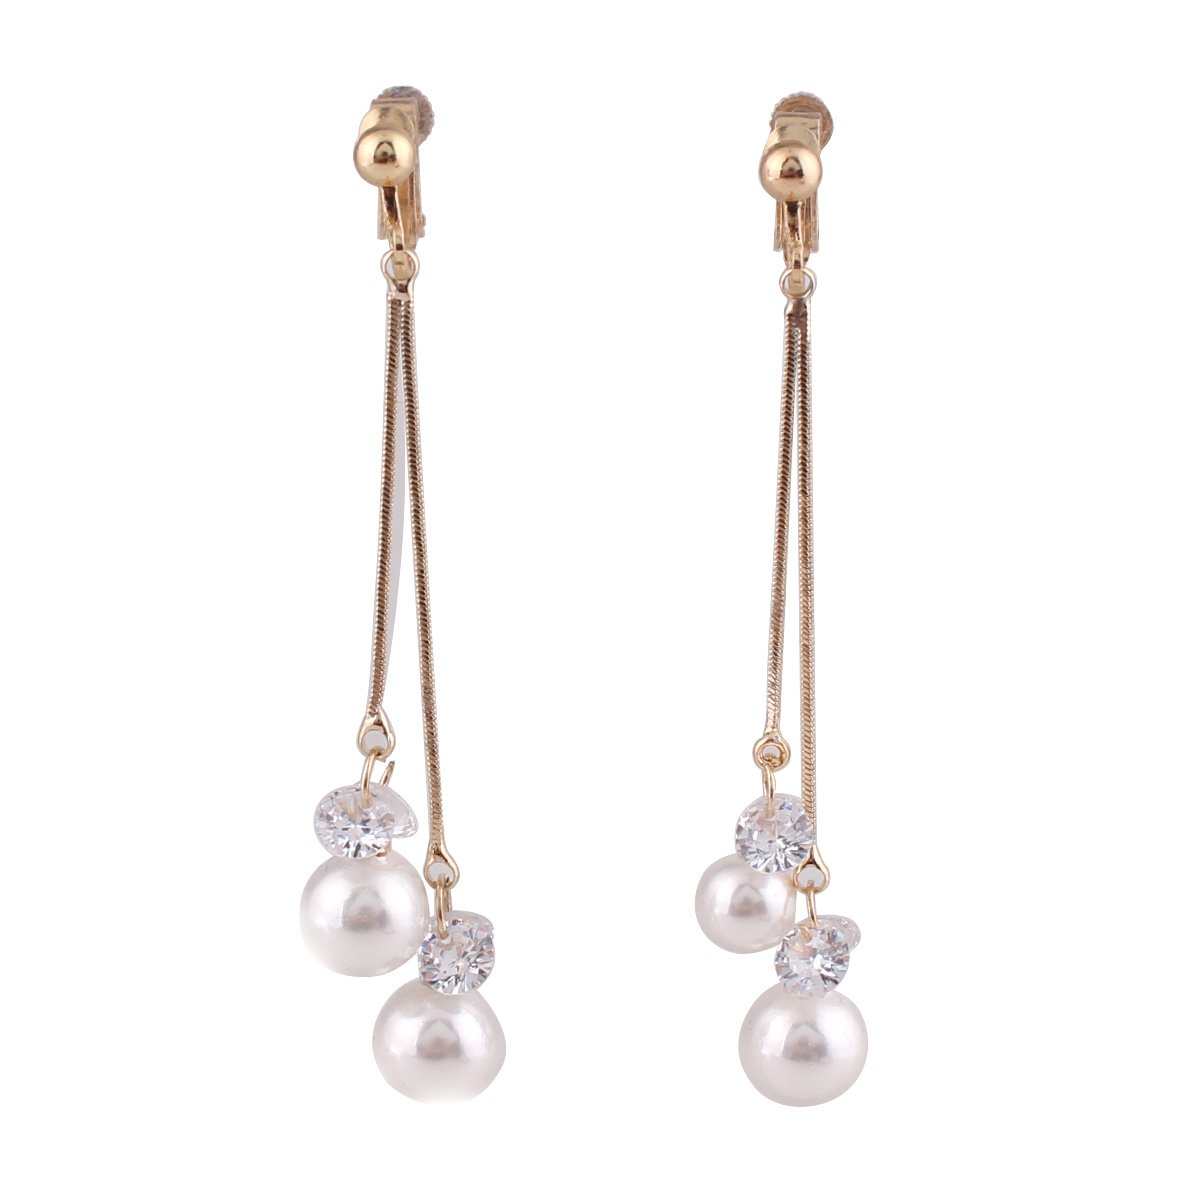 Grace Jun New Fashion Double Tassel CZ Simulated Pearl Clip on Earrings Non Piercing for Women Gift (Gold Clip-on)